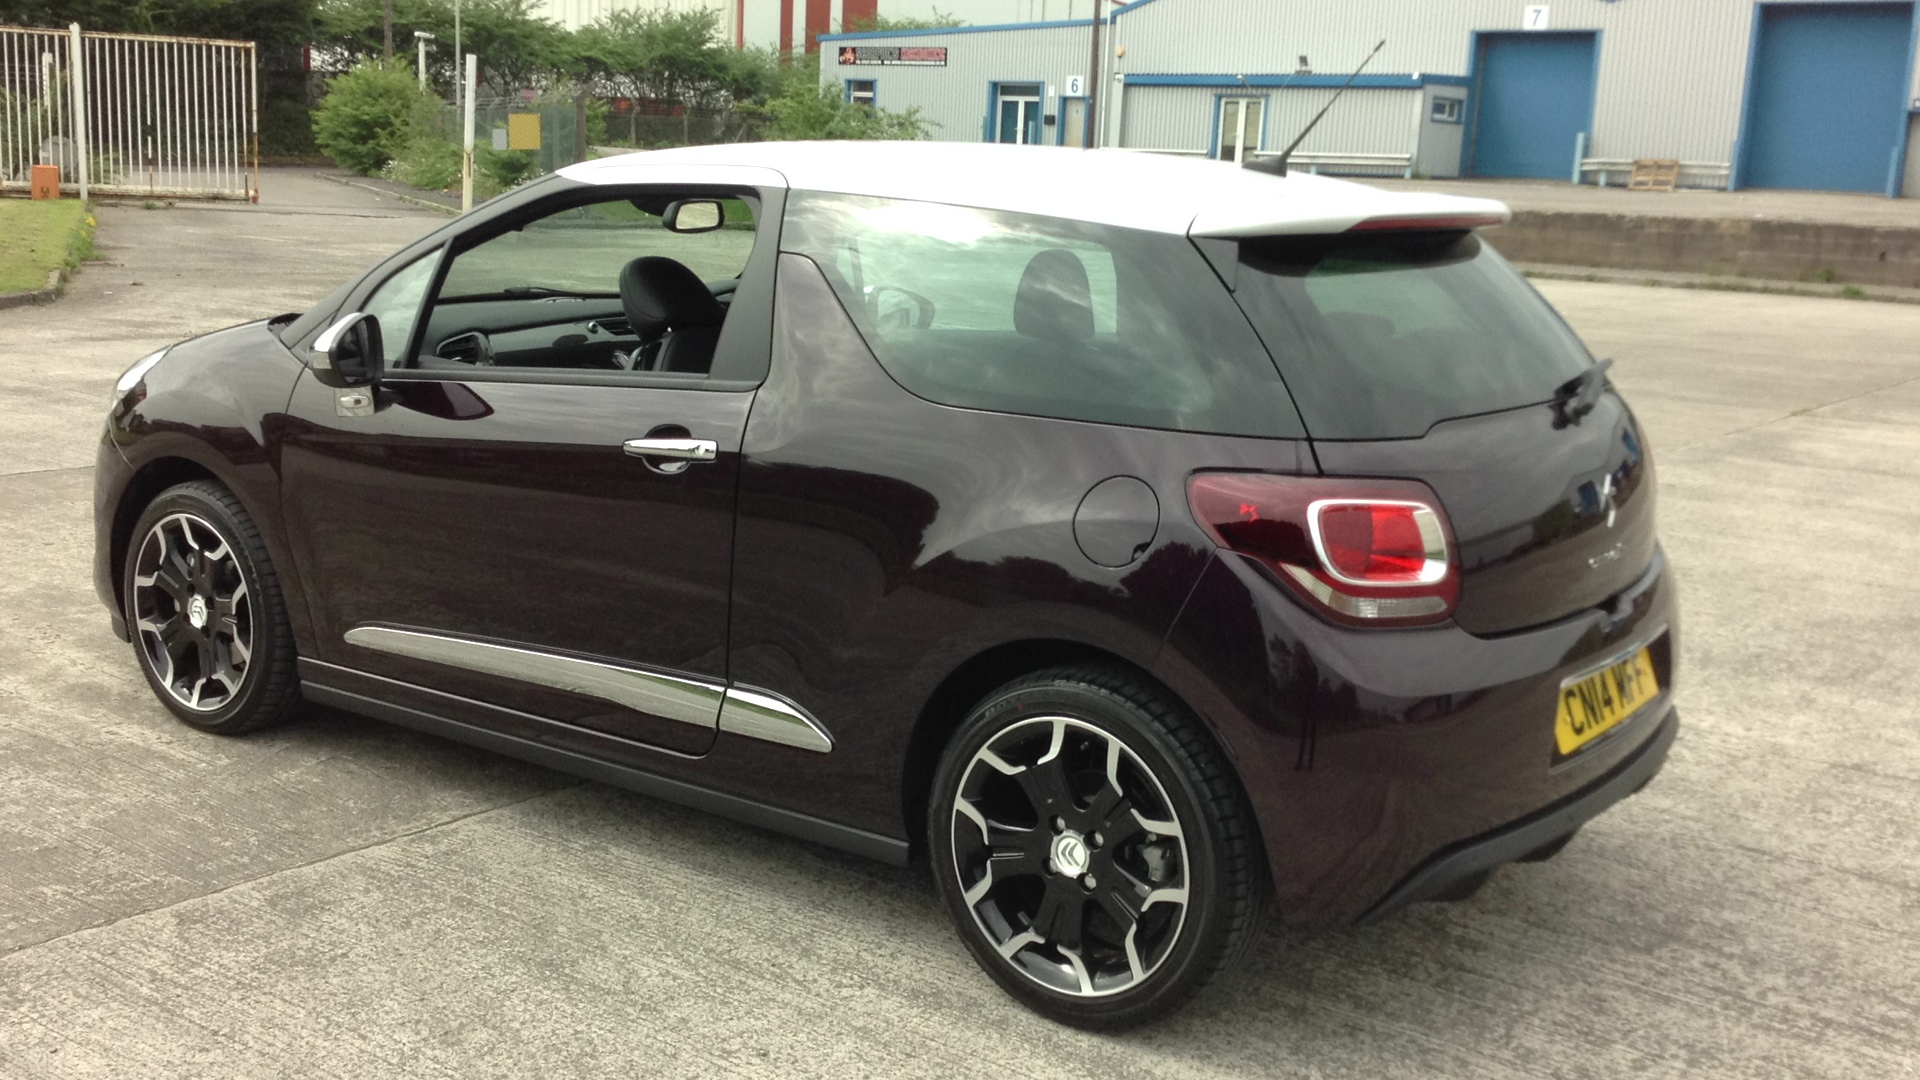 Used Citroen Ds3  black Cars Free Download Image